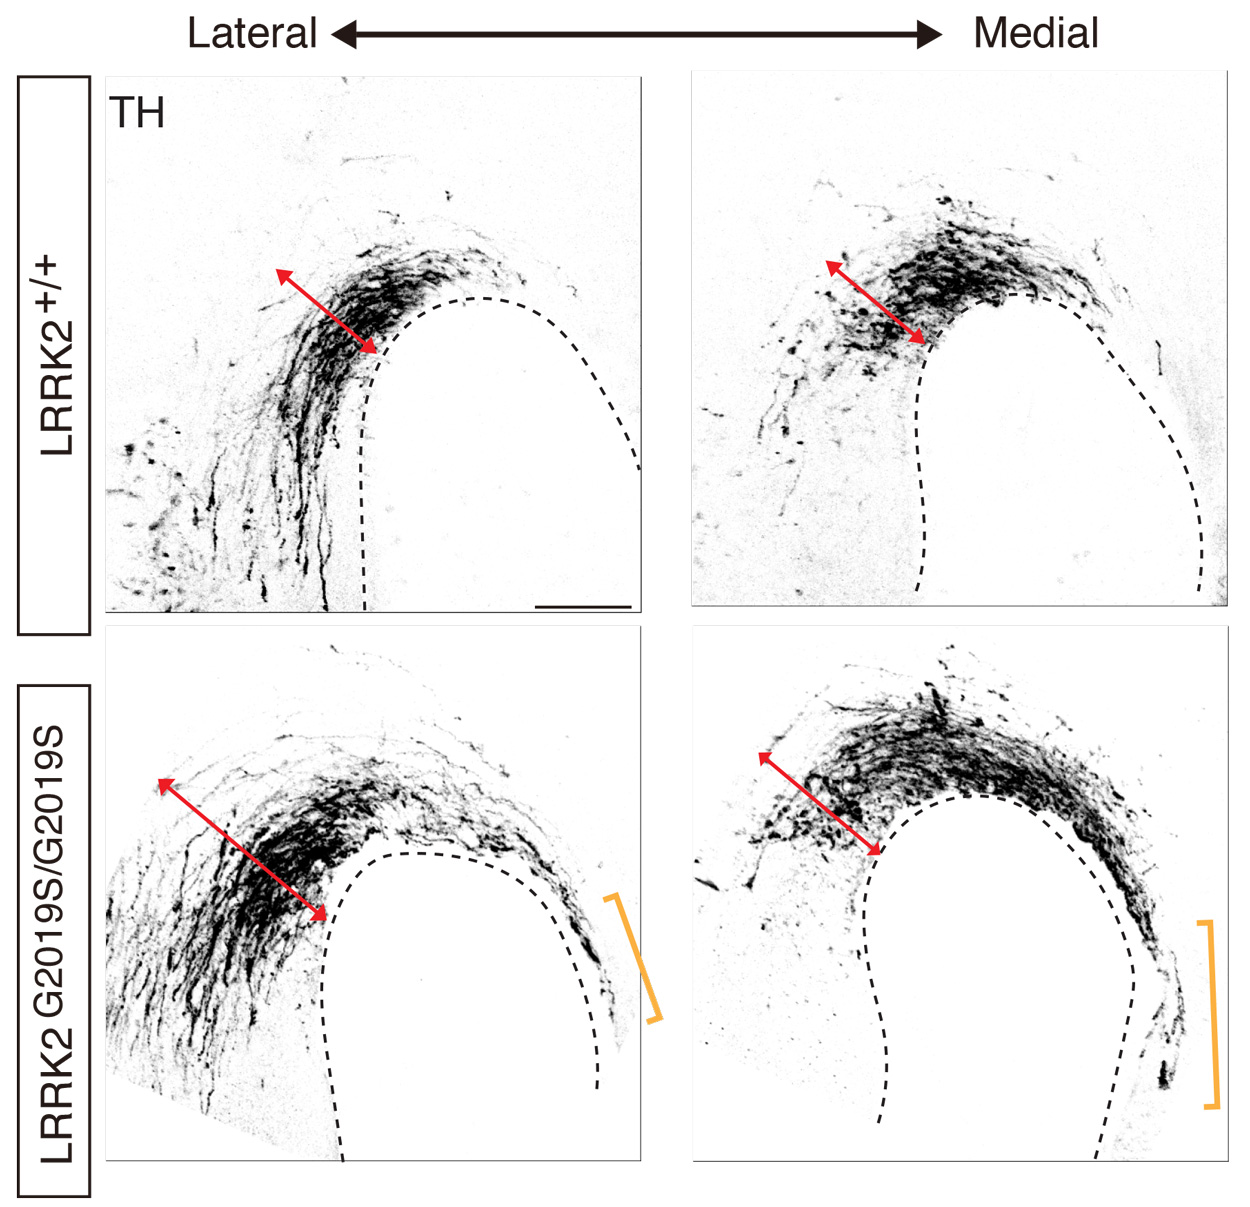 A series of neuronal images show abnormal development of midbrain dopaminergic axons.